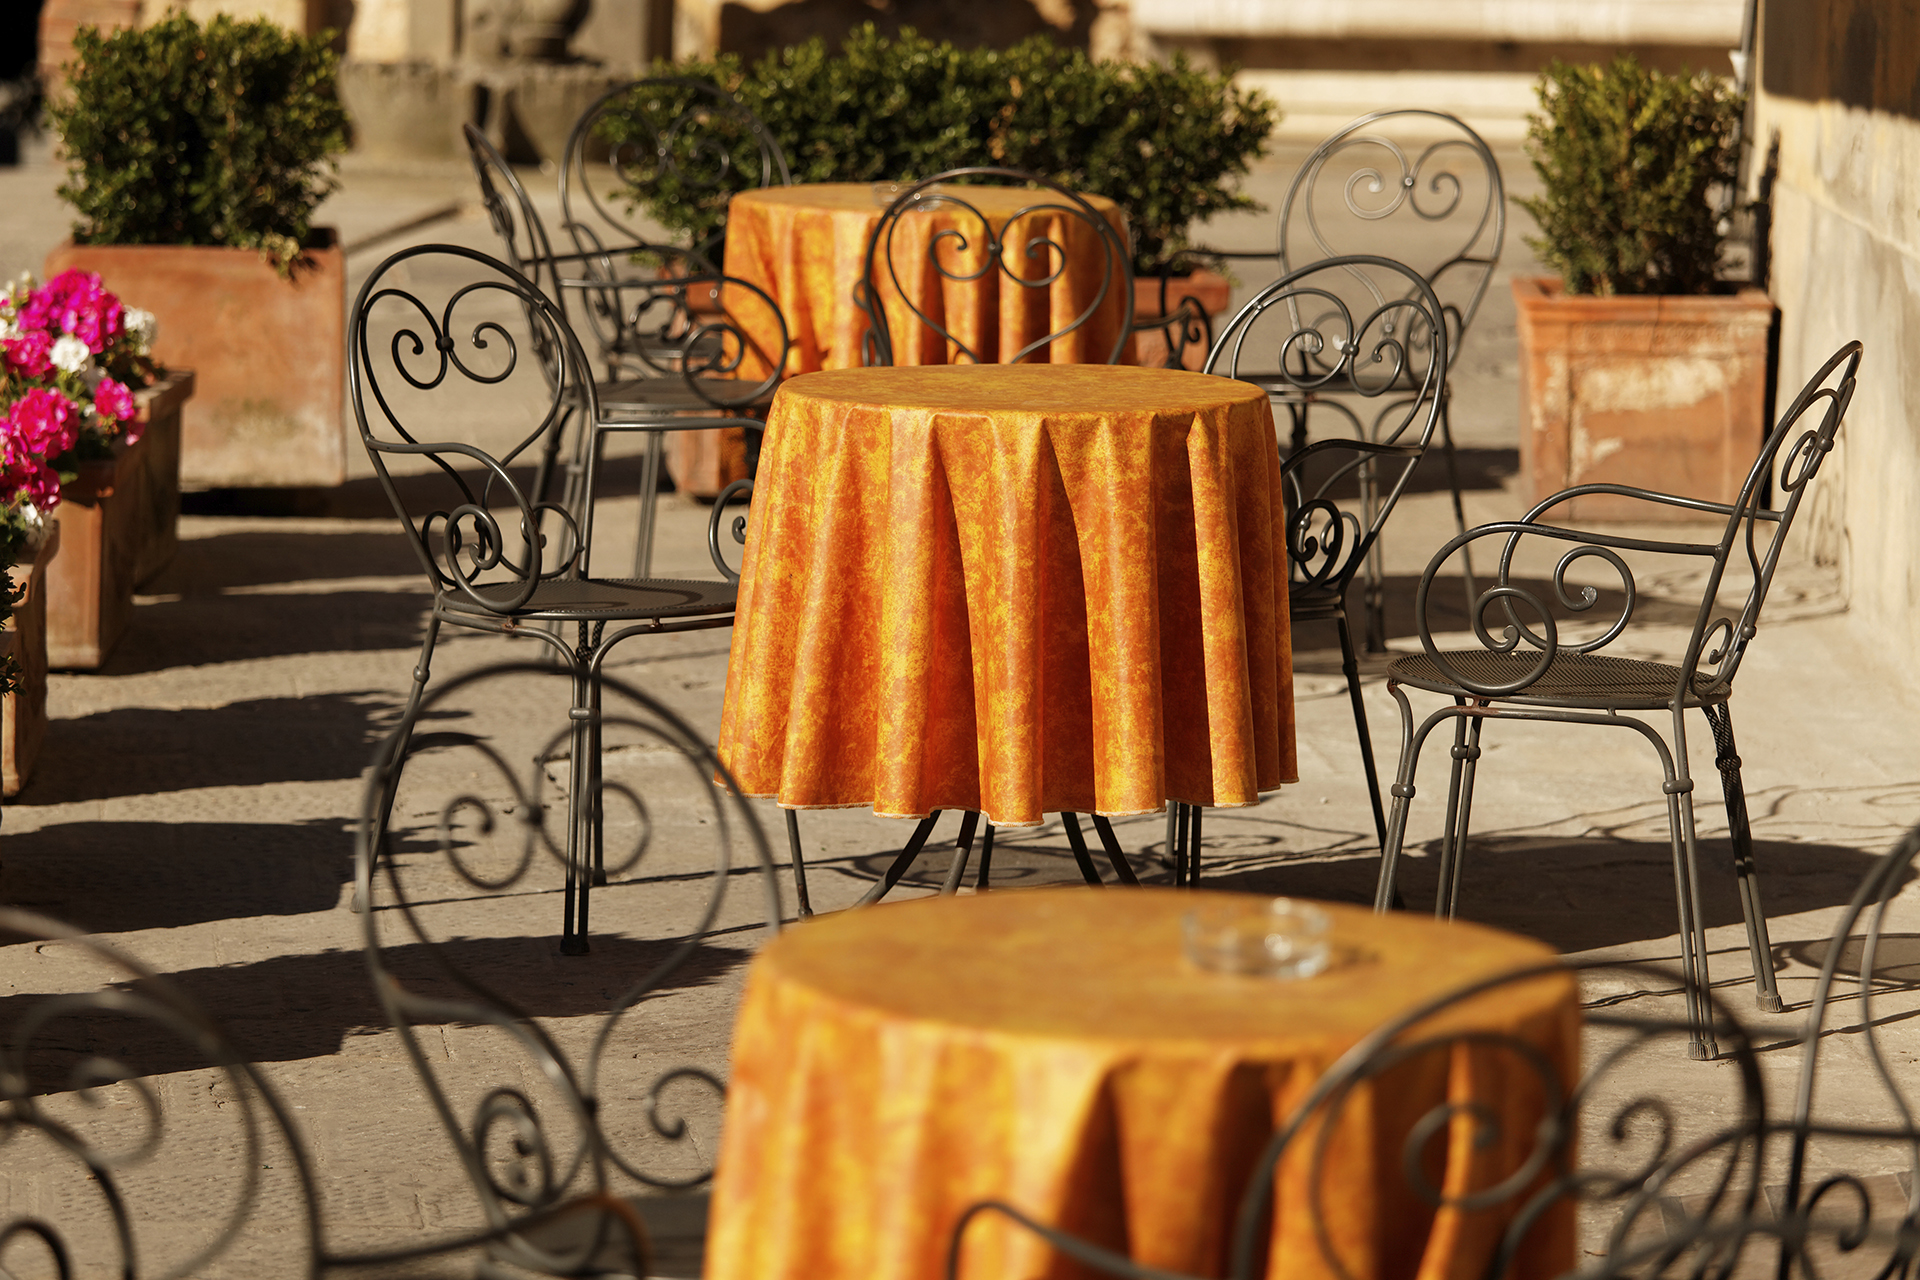 Photograph of outdoor cafe tables